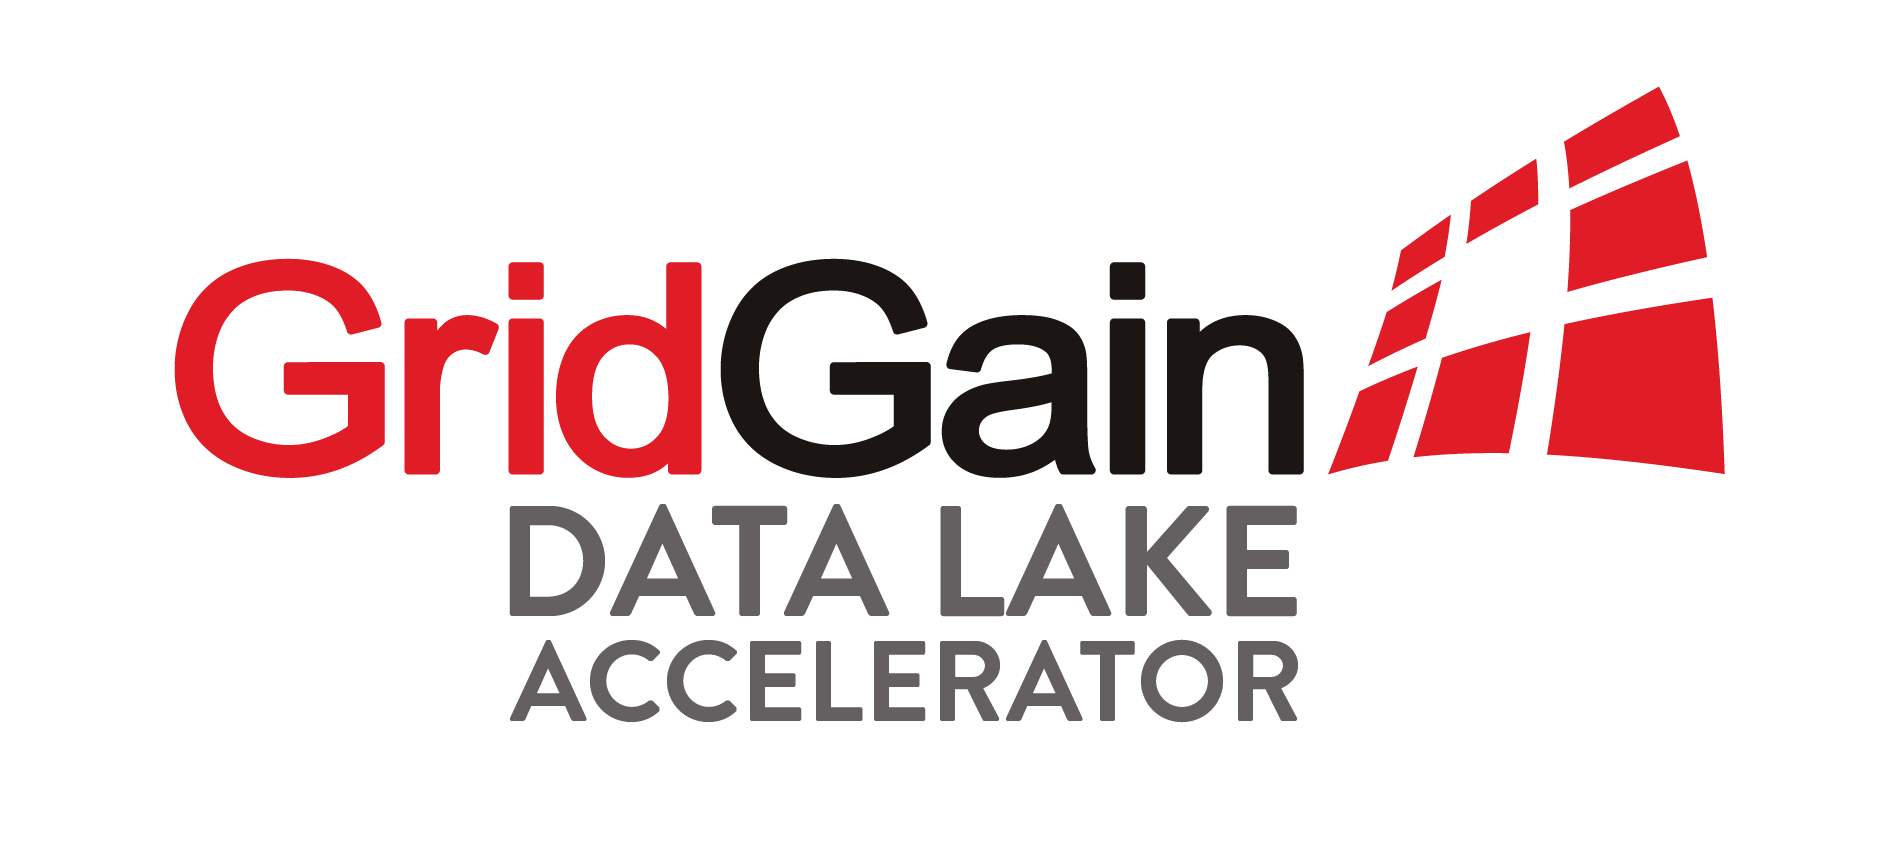 Data Lake Accelerator